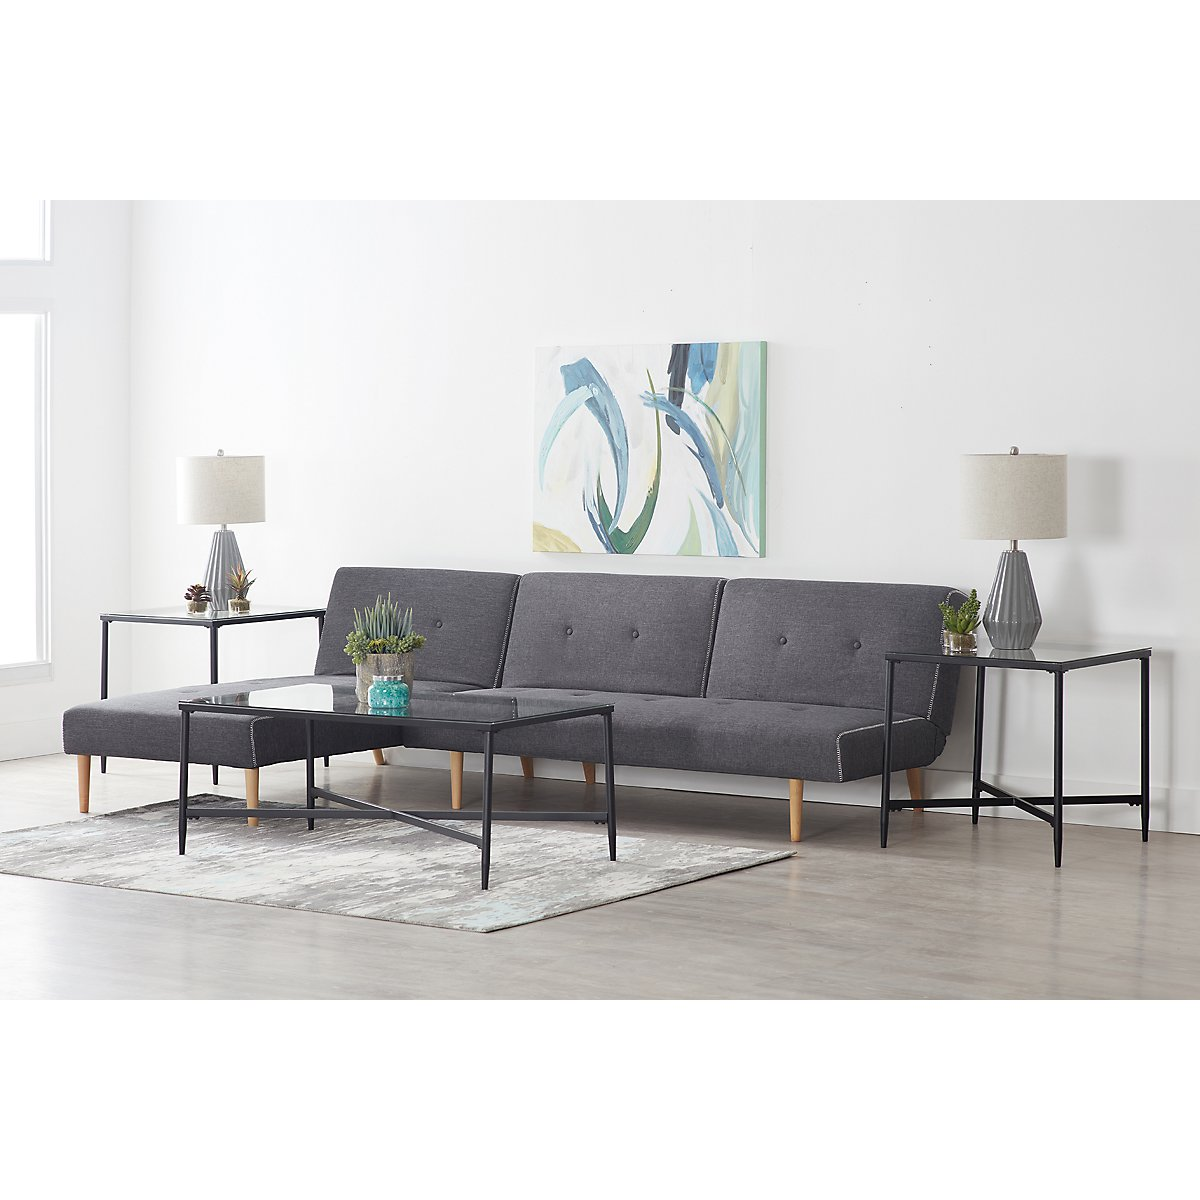 City Furniture: Ethan Dark Gray 7-Piece Living Room Package